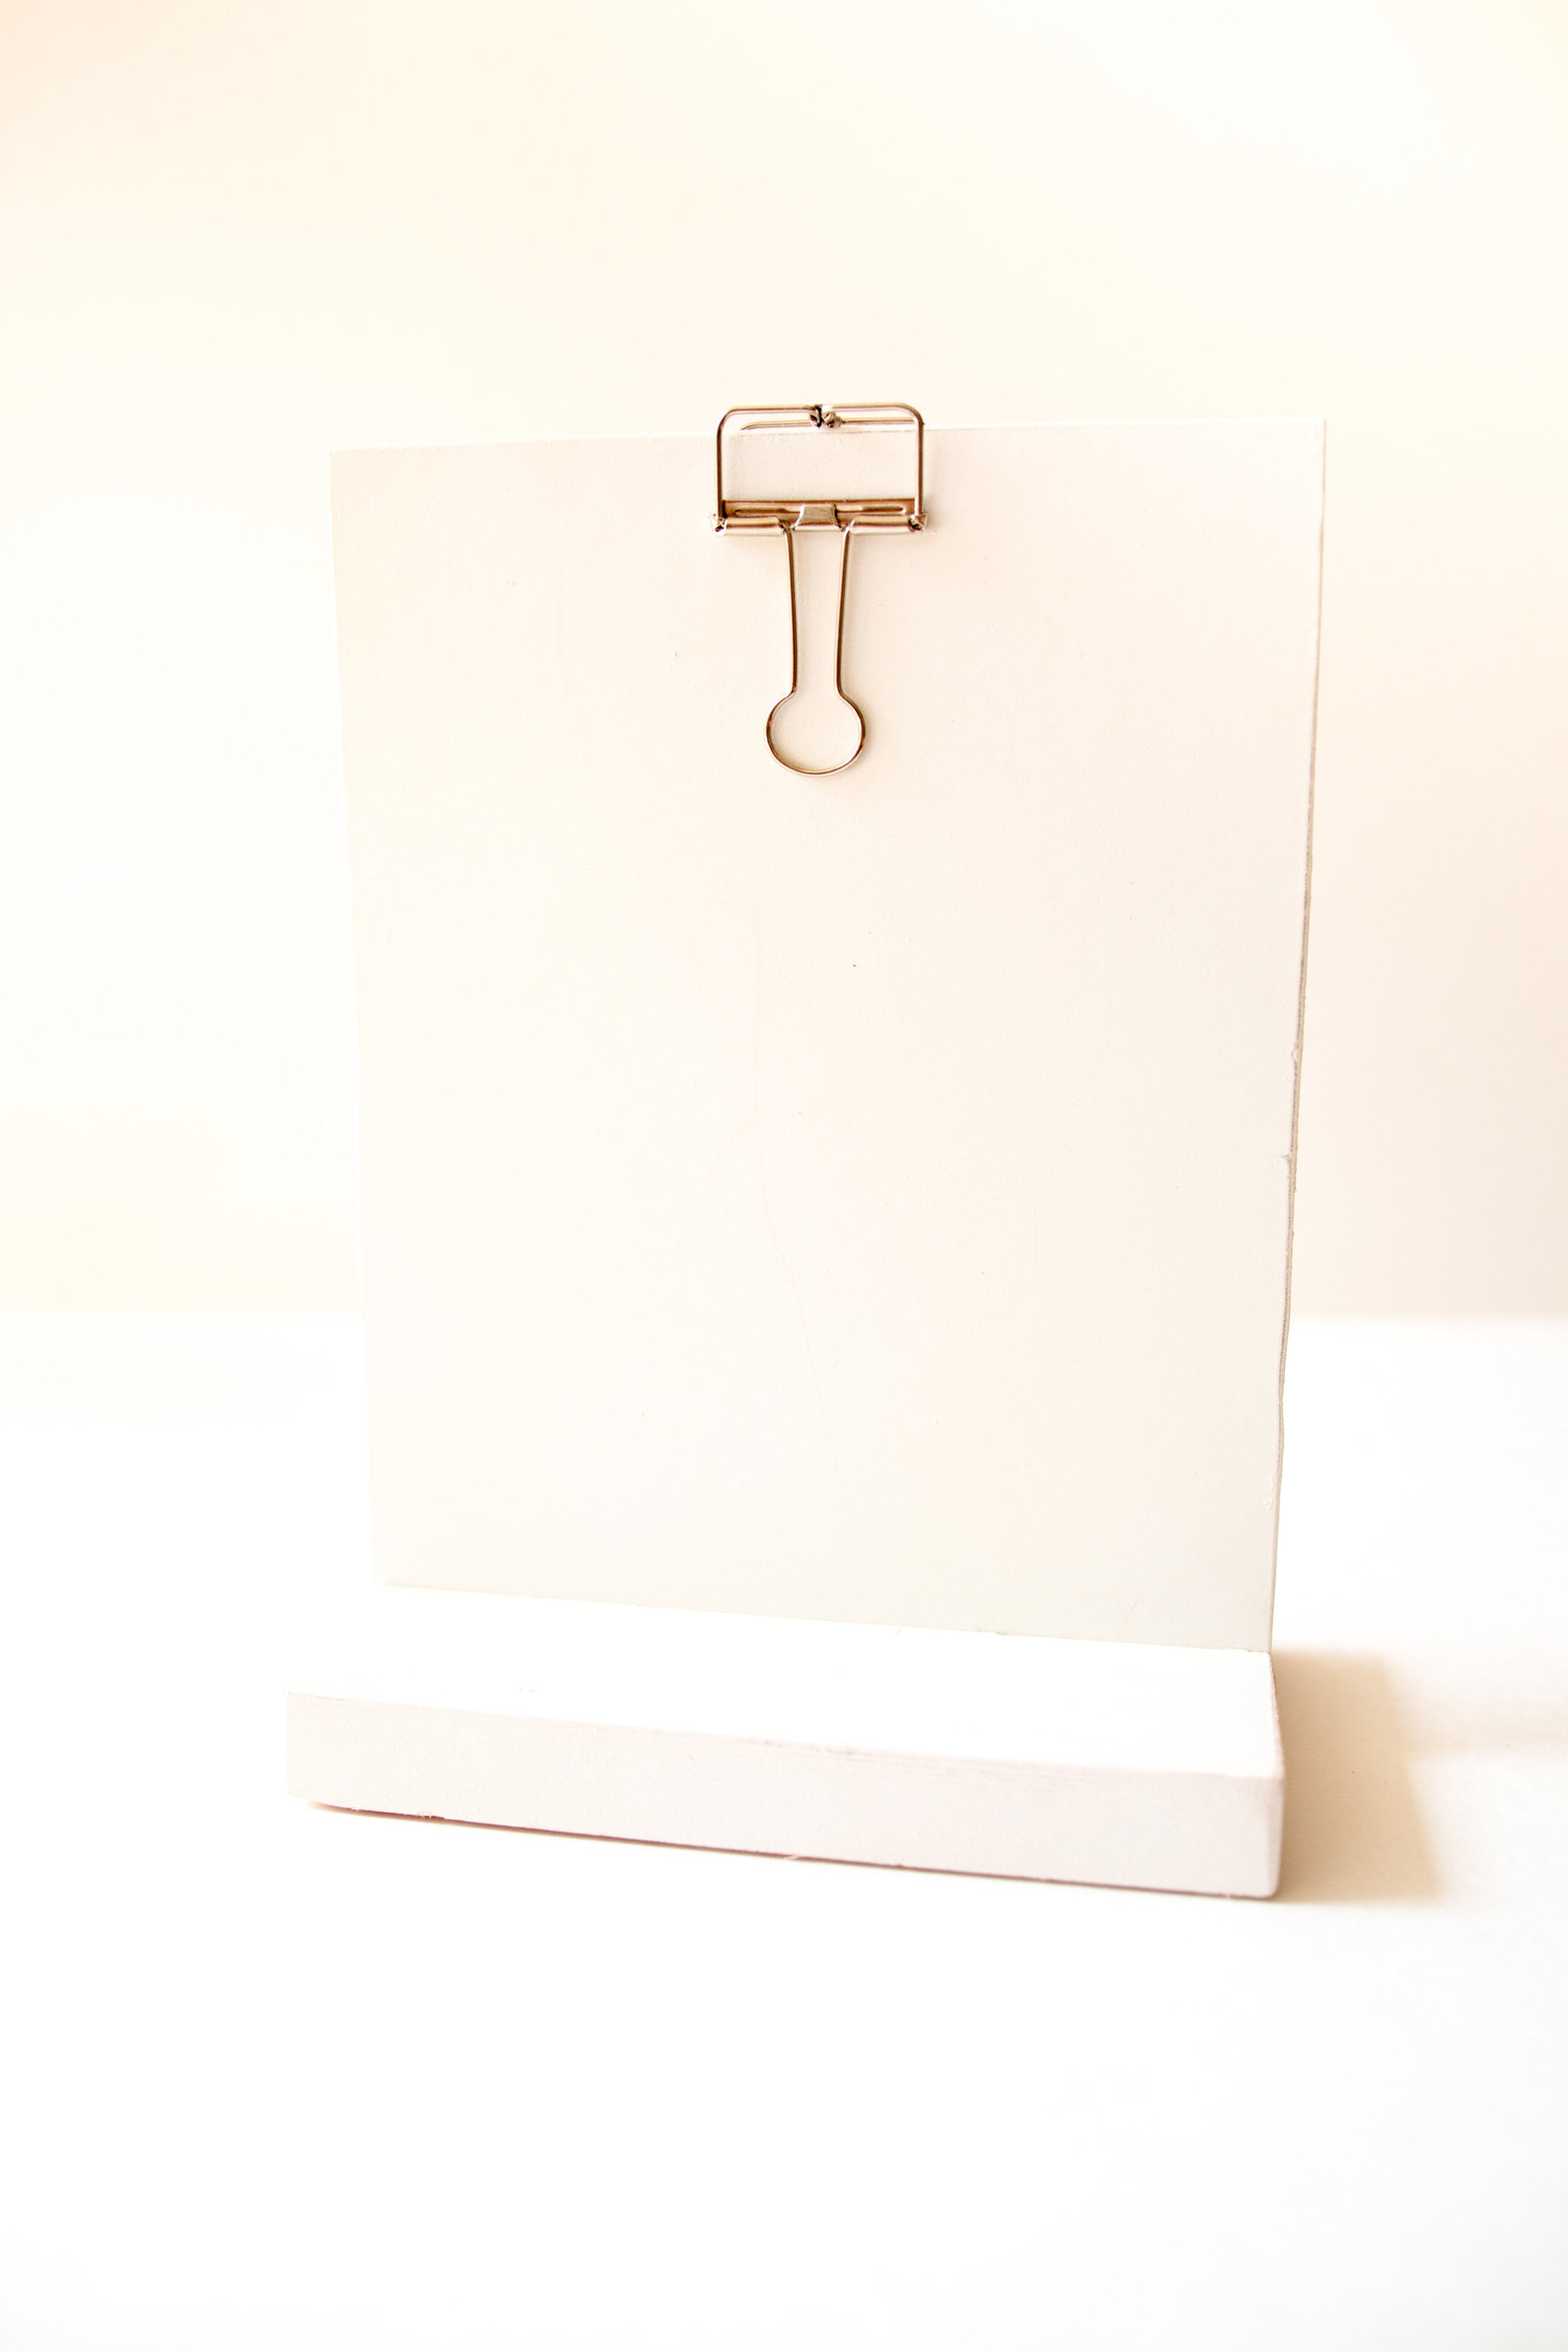 White self standing small clip board for signage at wedding or events through Hue + FA Rentals